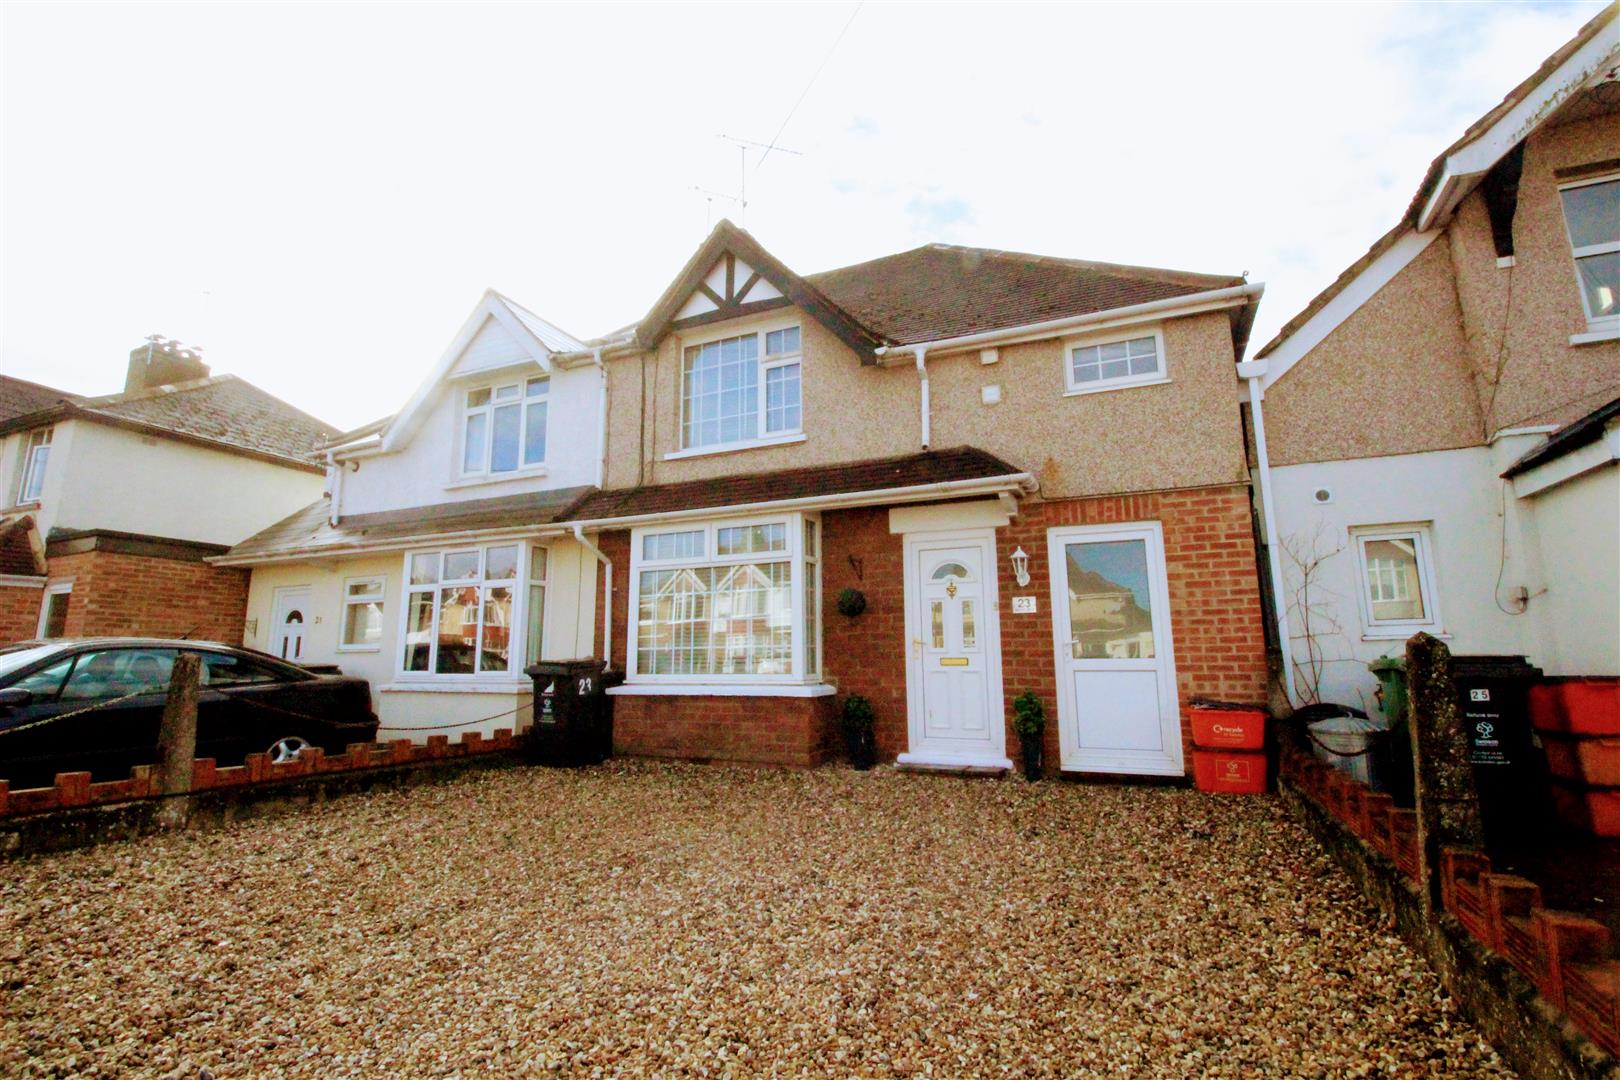 3 Bedrooms Semi Detached House for sale in Bampton Grove, Old Walcot, Swindon